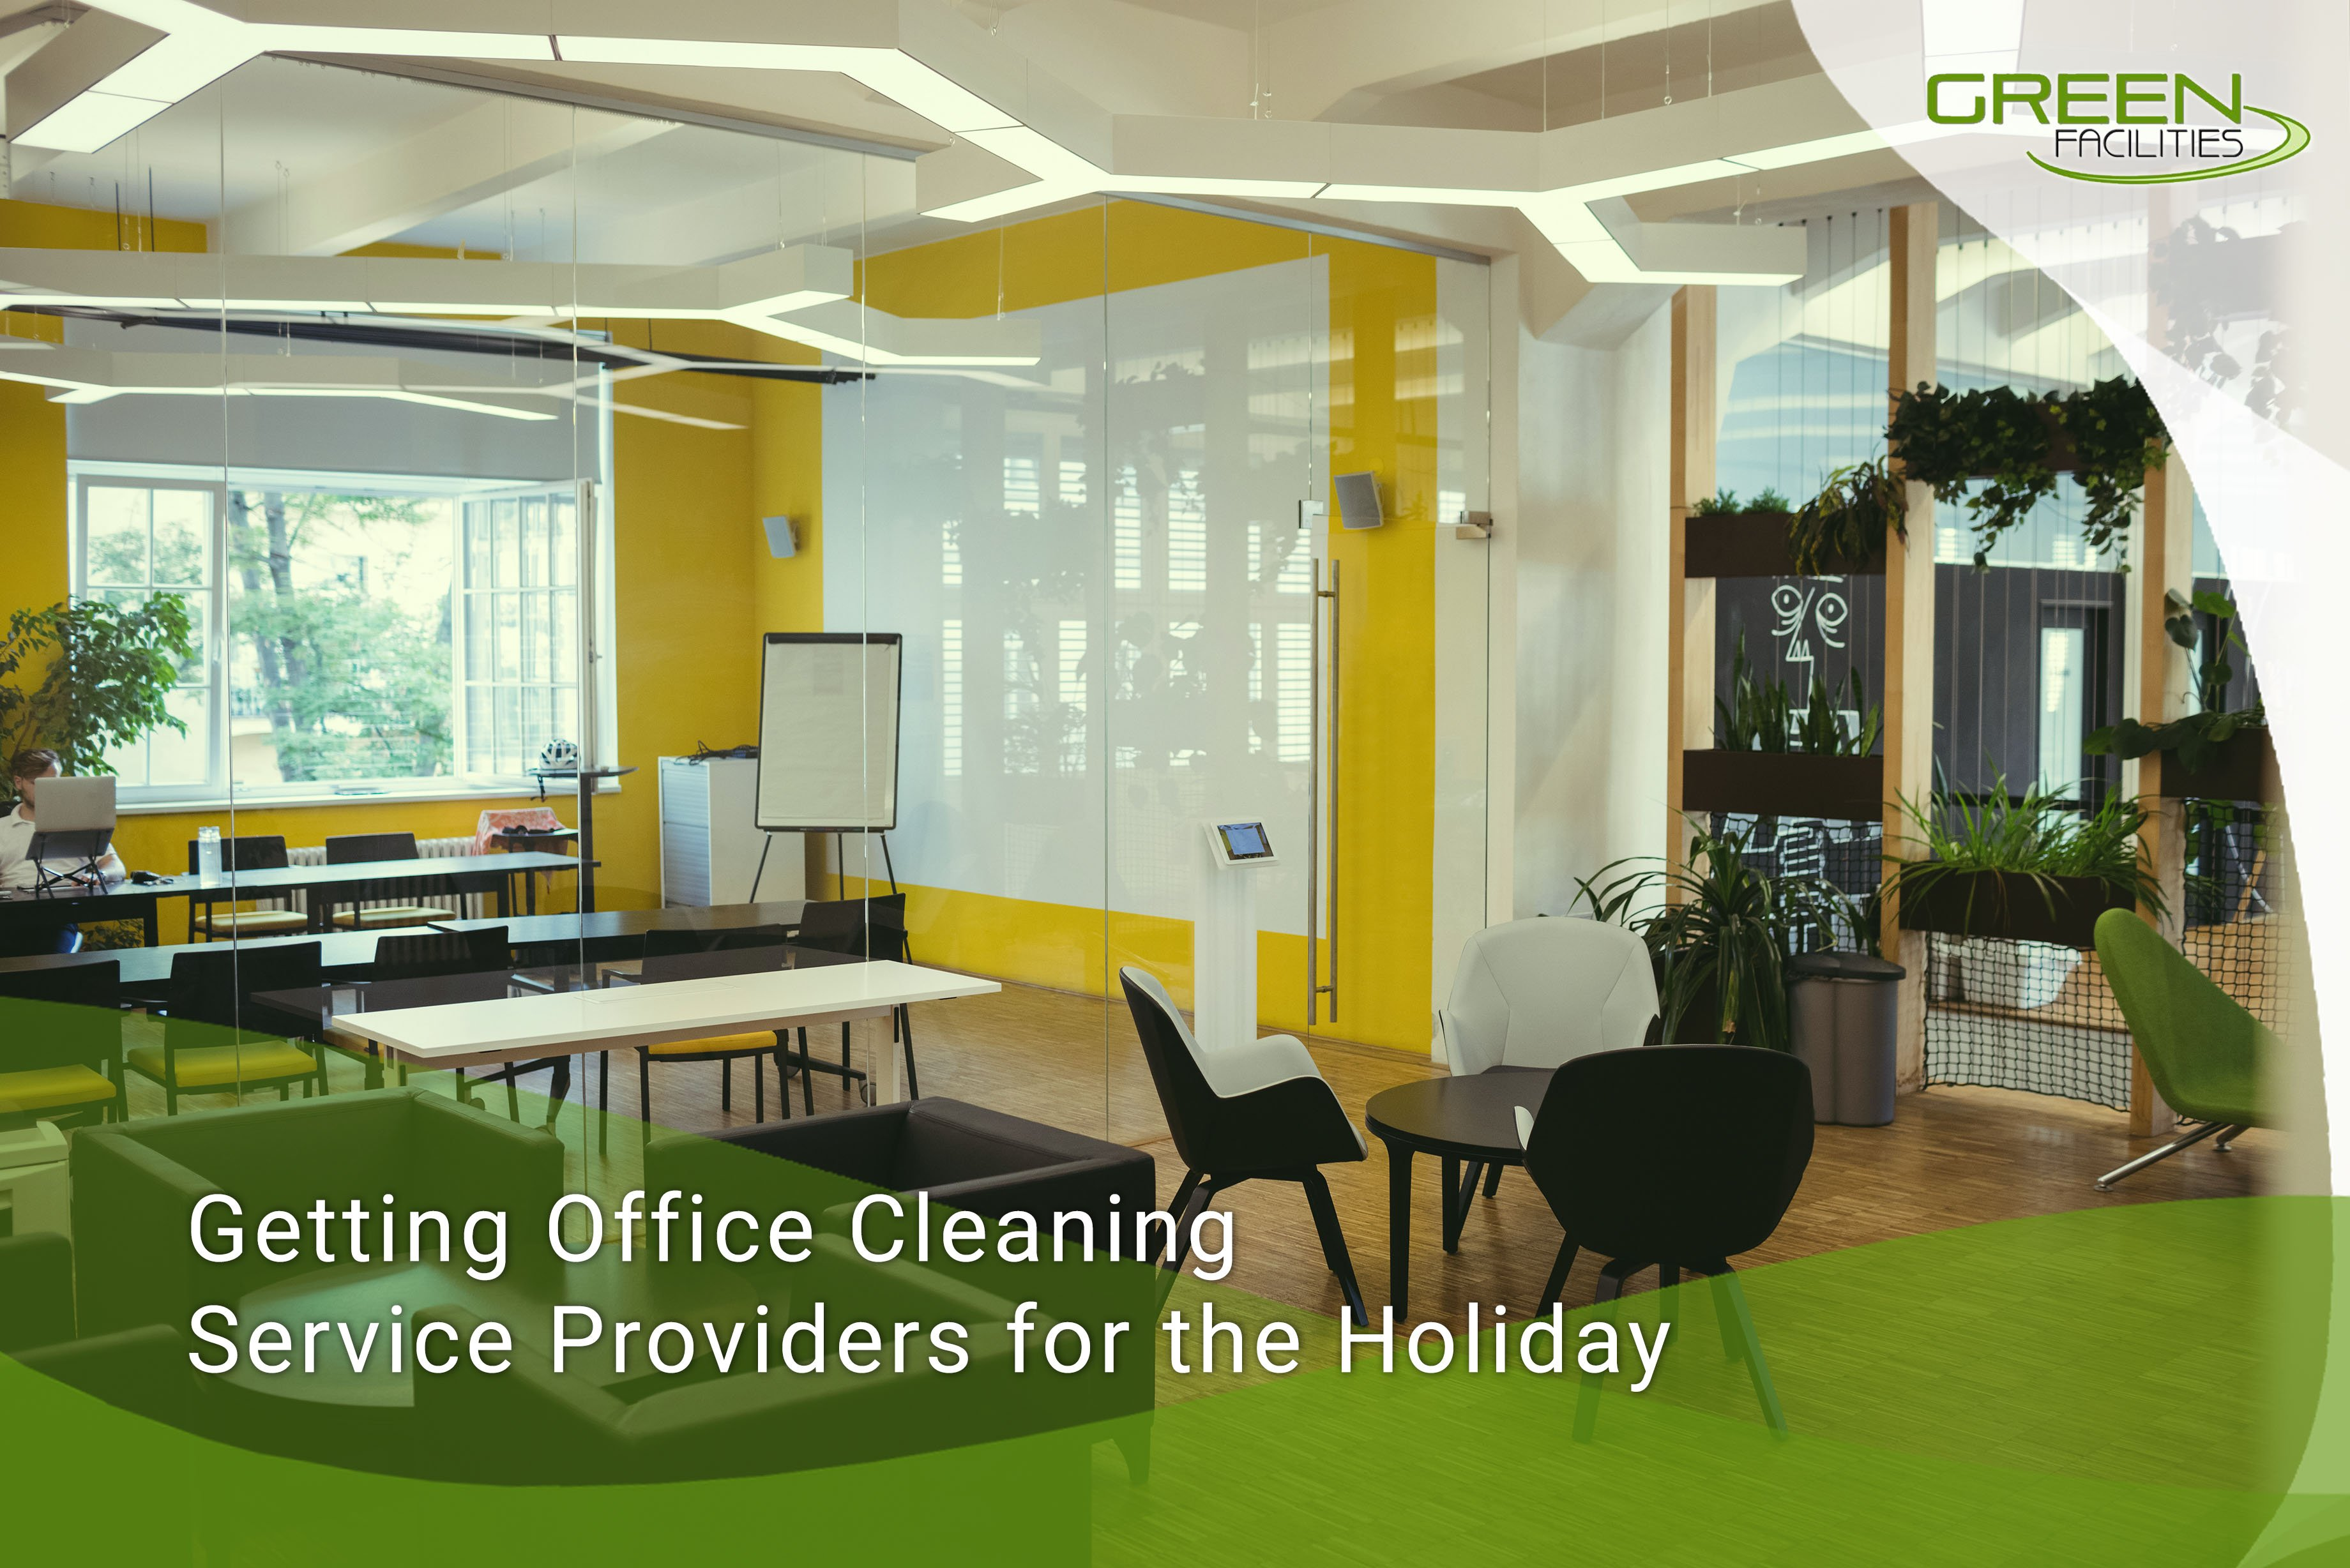 Getting Office Cleaning Service Providers for the Holiday